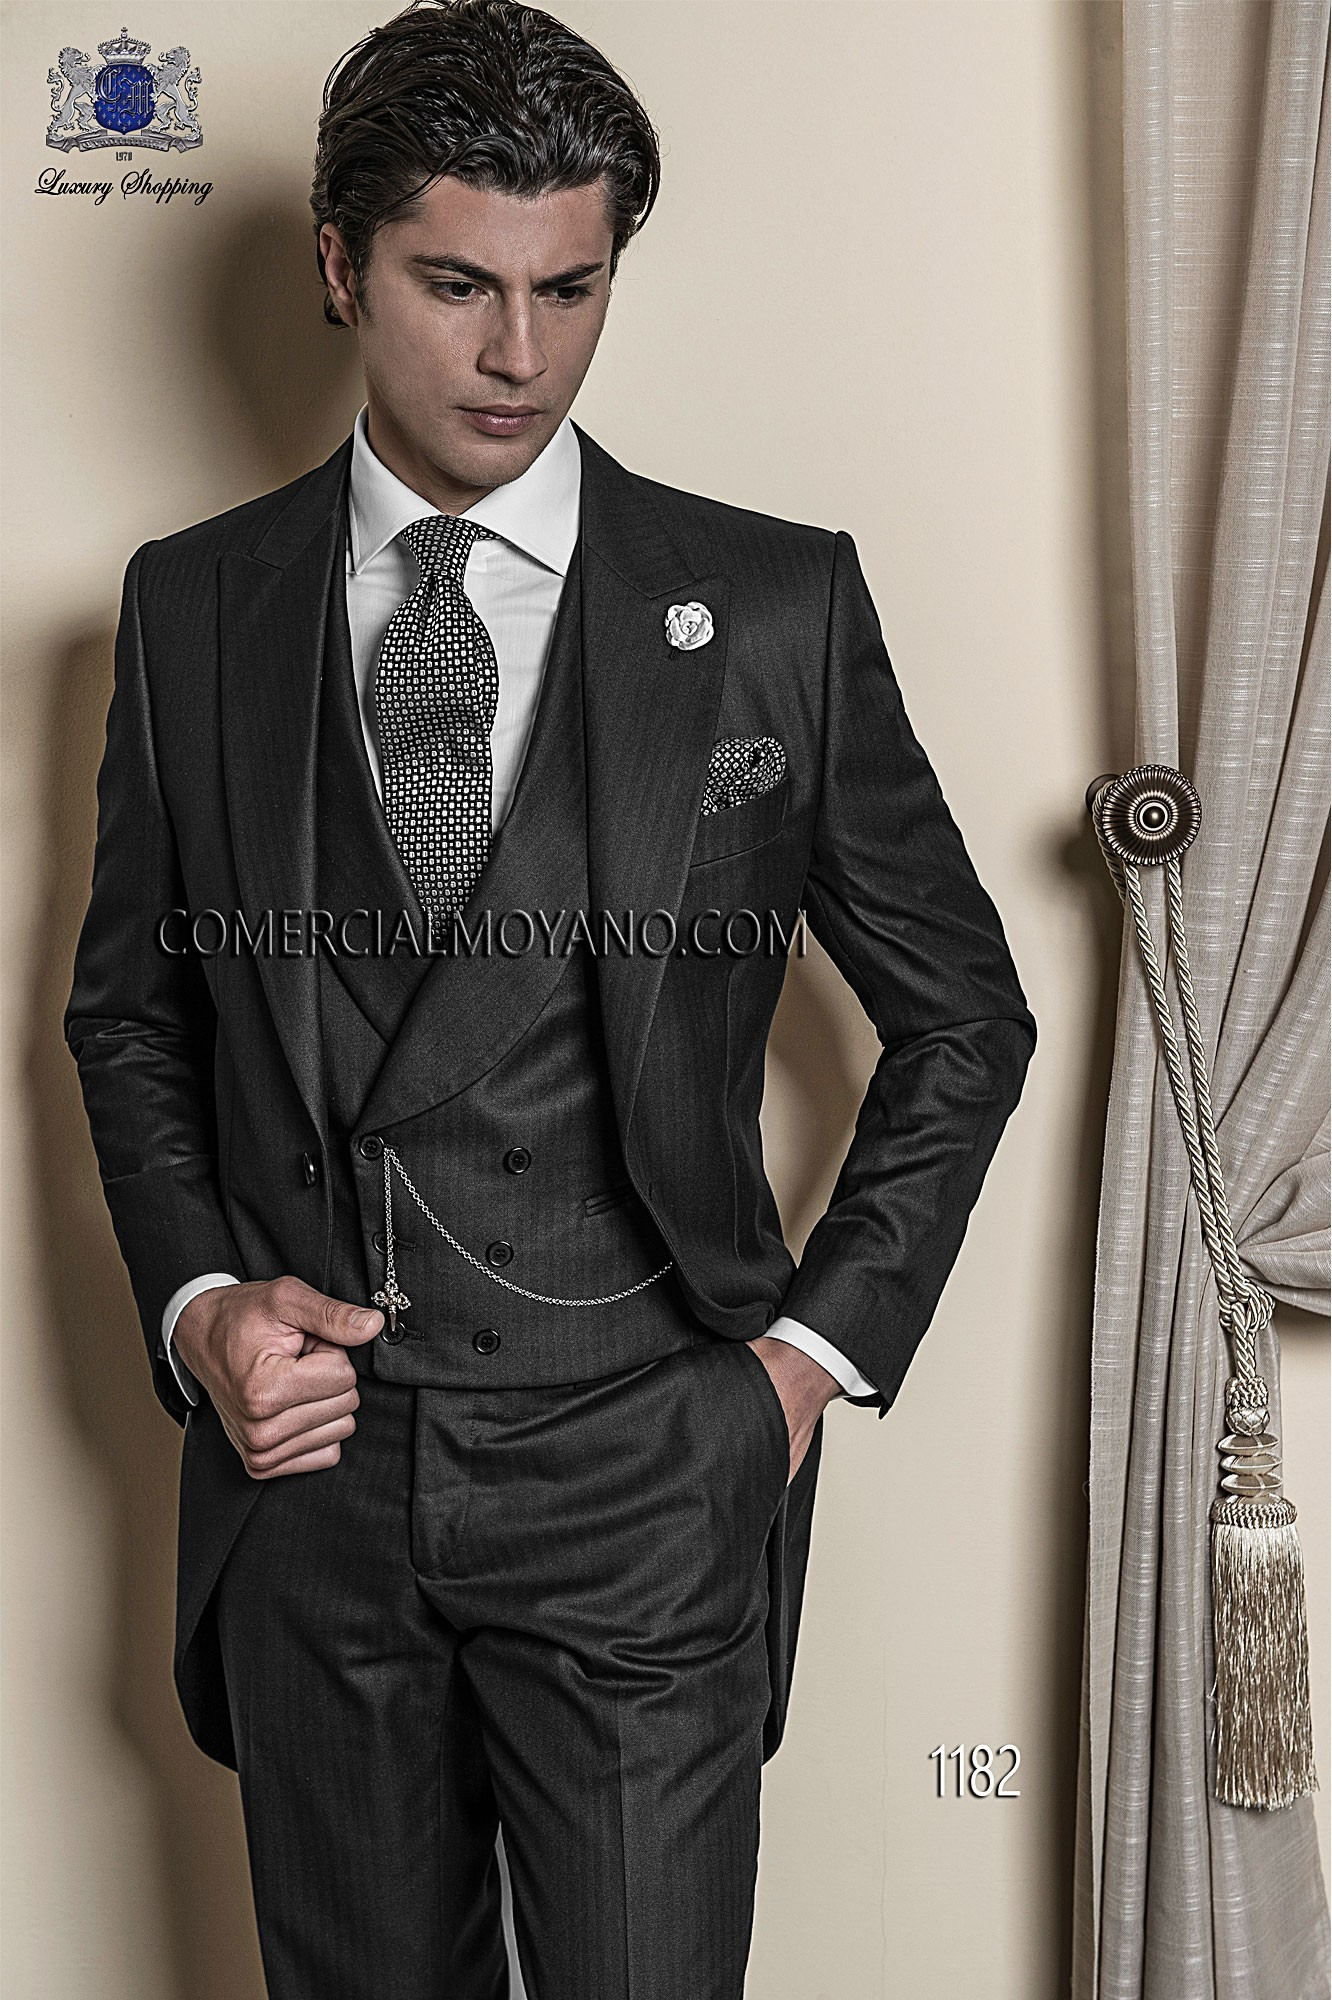 Italian bespoke single breasted suit, 2 buttons, in new performance black, style 1182 Ottavio Nuccio Gala, Gentleman collection.